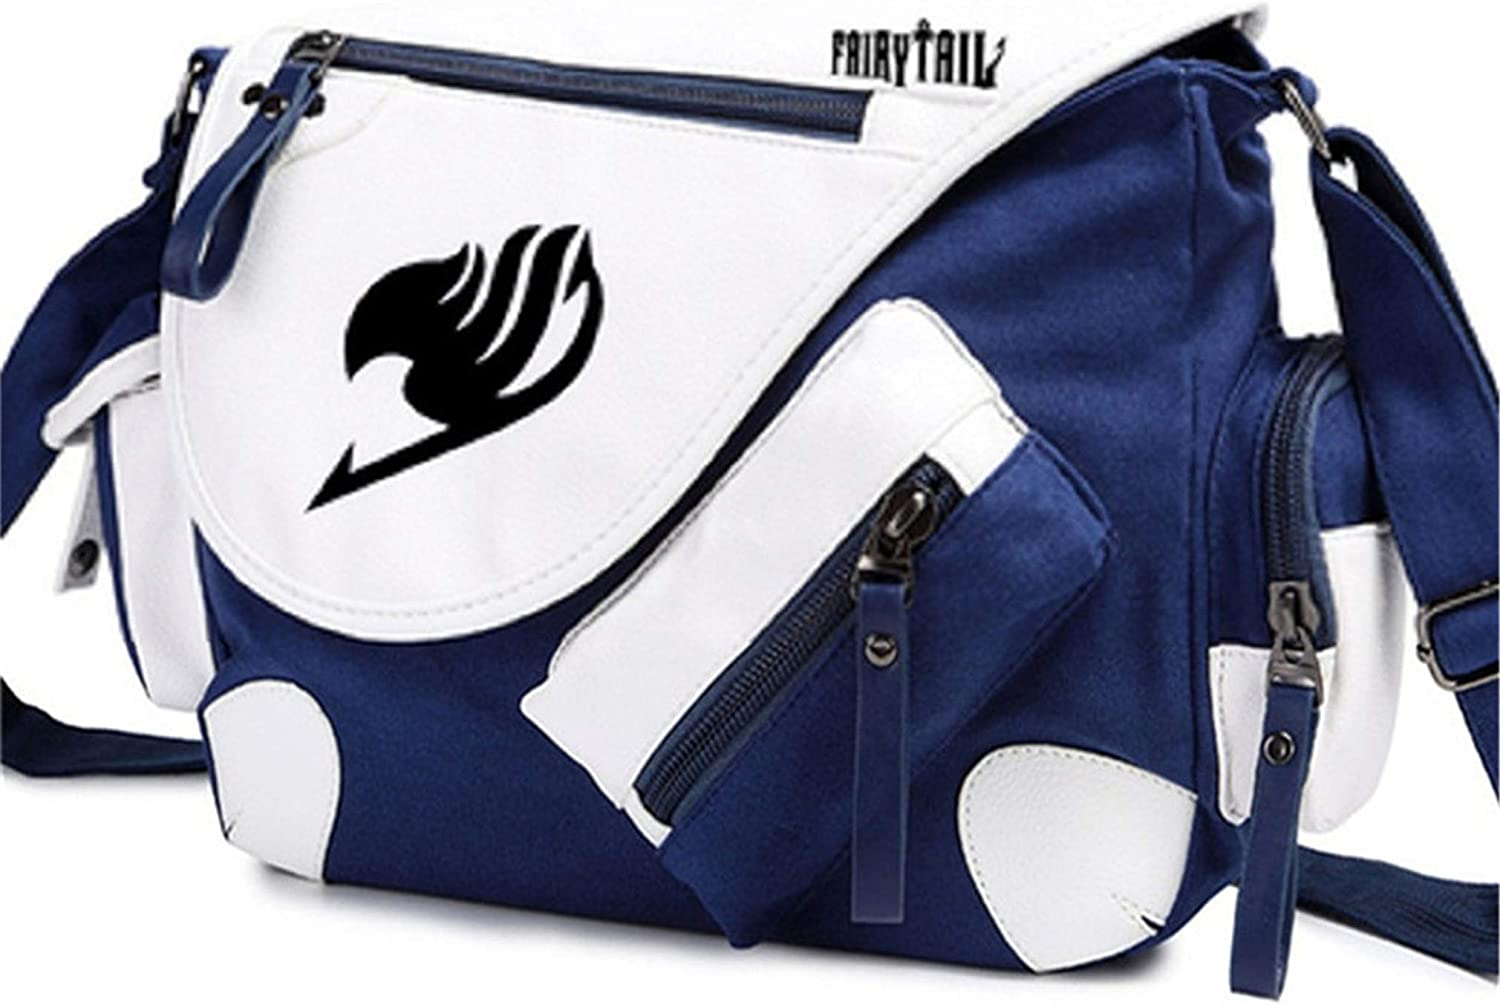 Siawasey Anime Fairy Tail Cosplay Backpack Cross-Body Tote Bag Messenger Bag Shoulder Bag